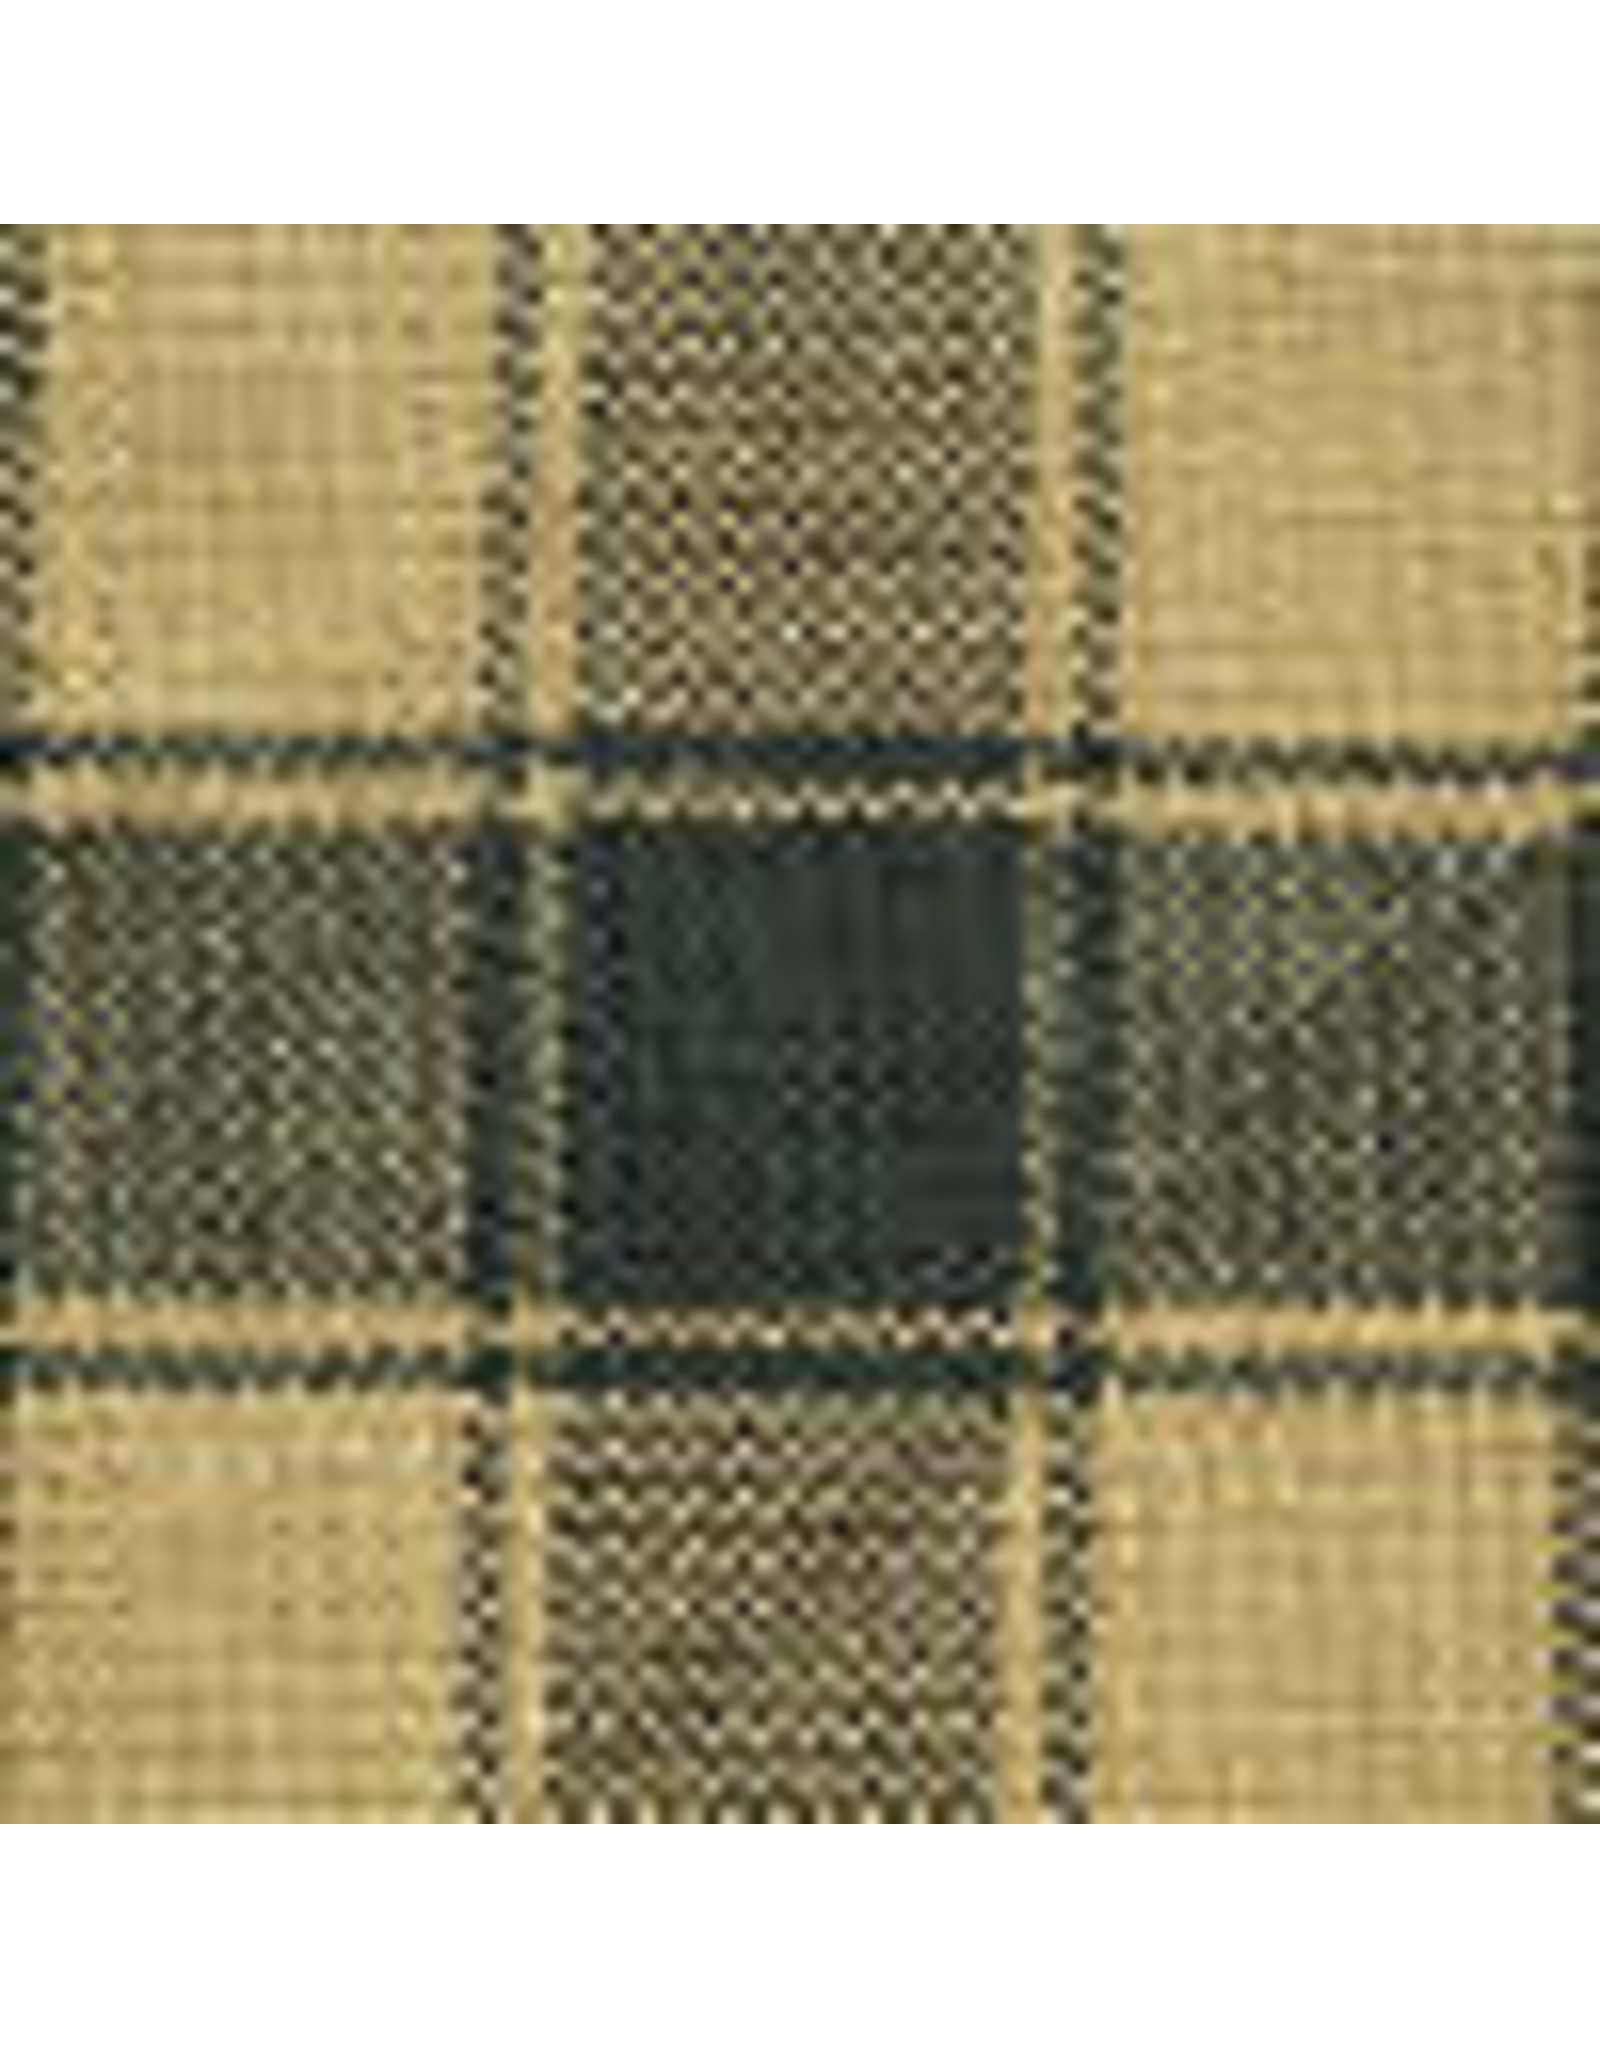 Yd. Green and Tan House Check Fabric #44